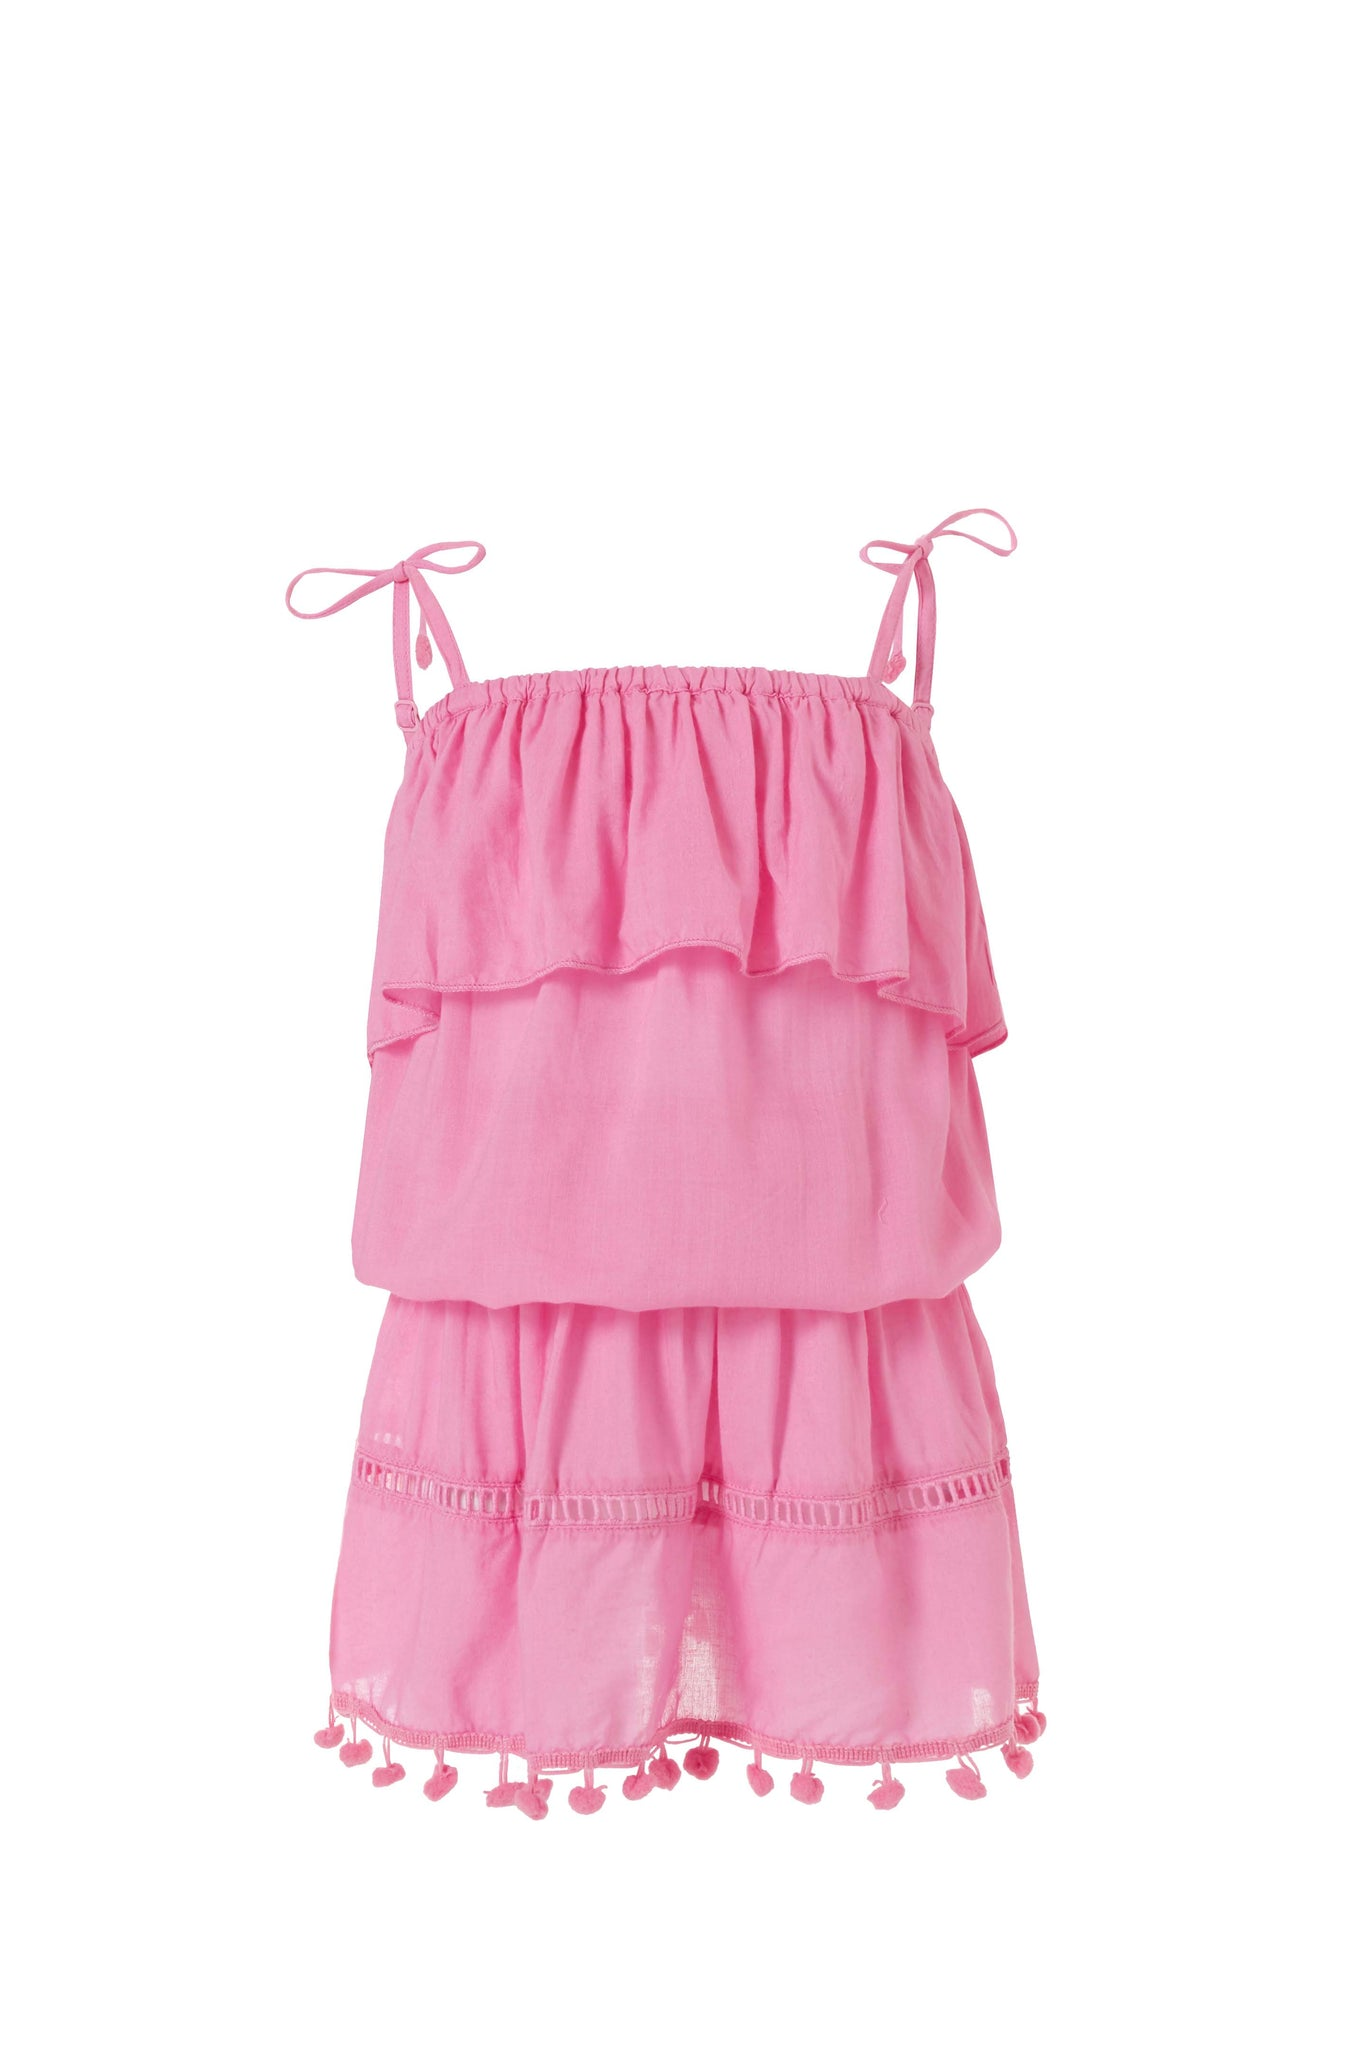 Baby Joy Rose Beach Dress